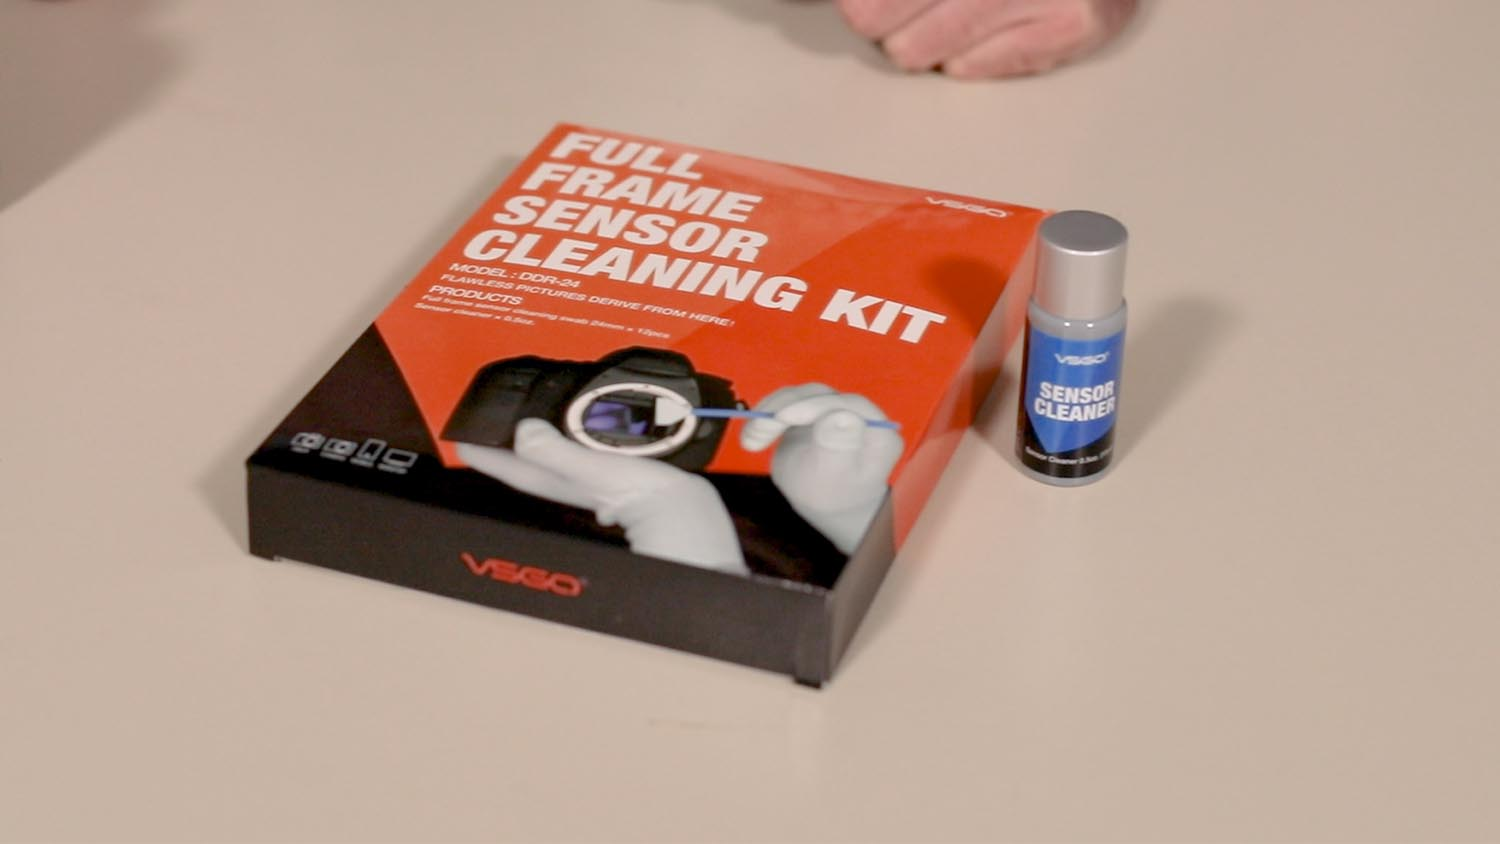 Example of a camera sensor cleaning kit